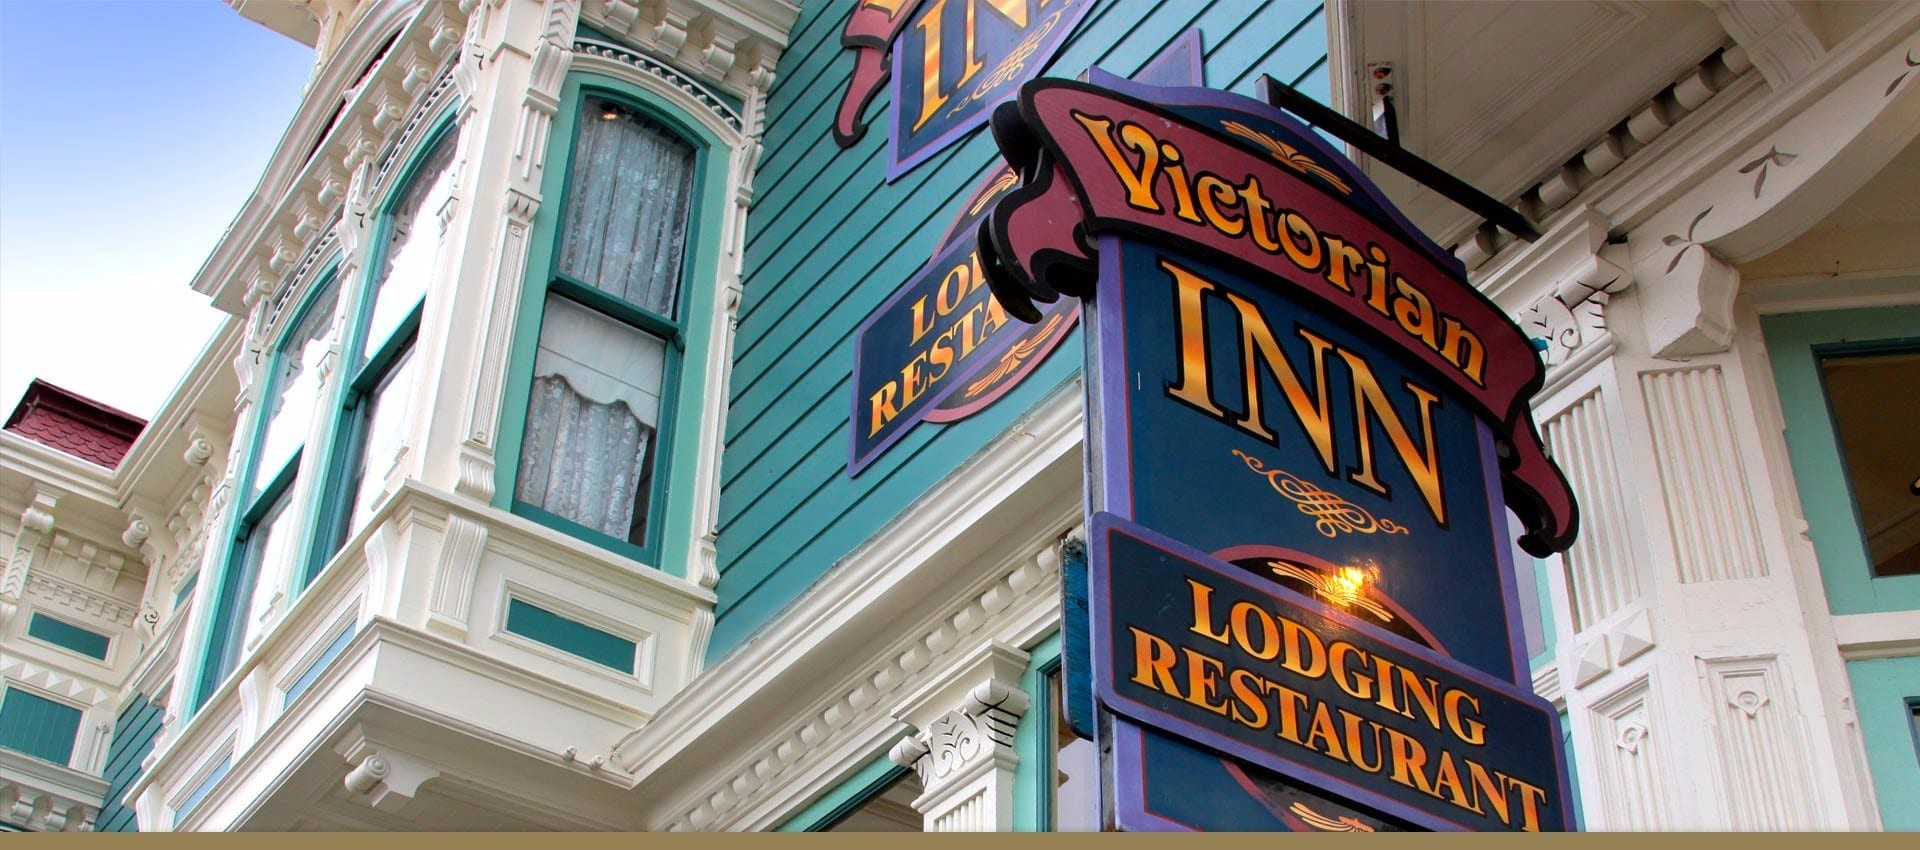 Victorian Inn historical exterior and sign